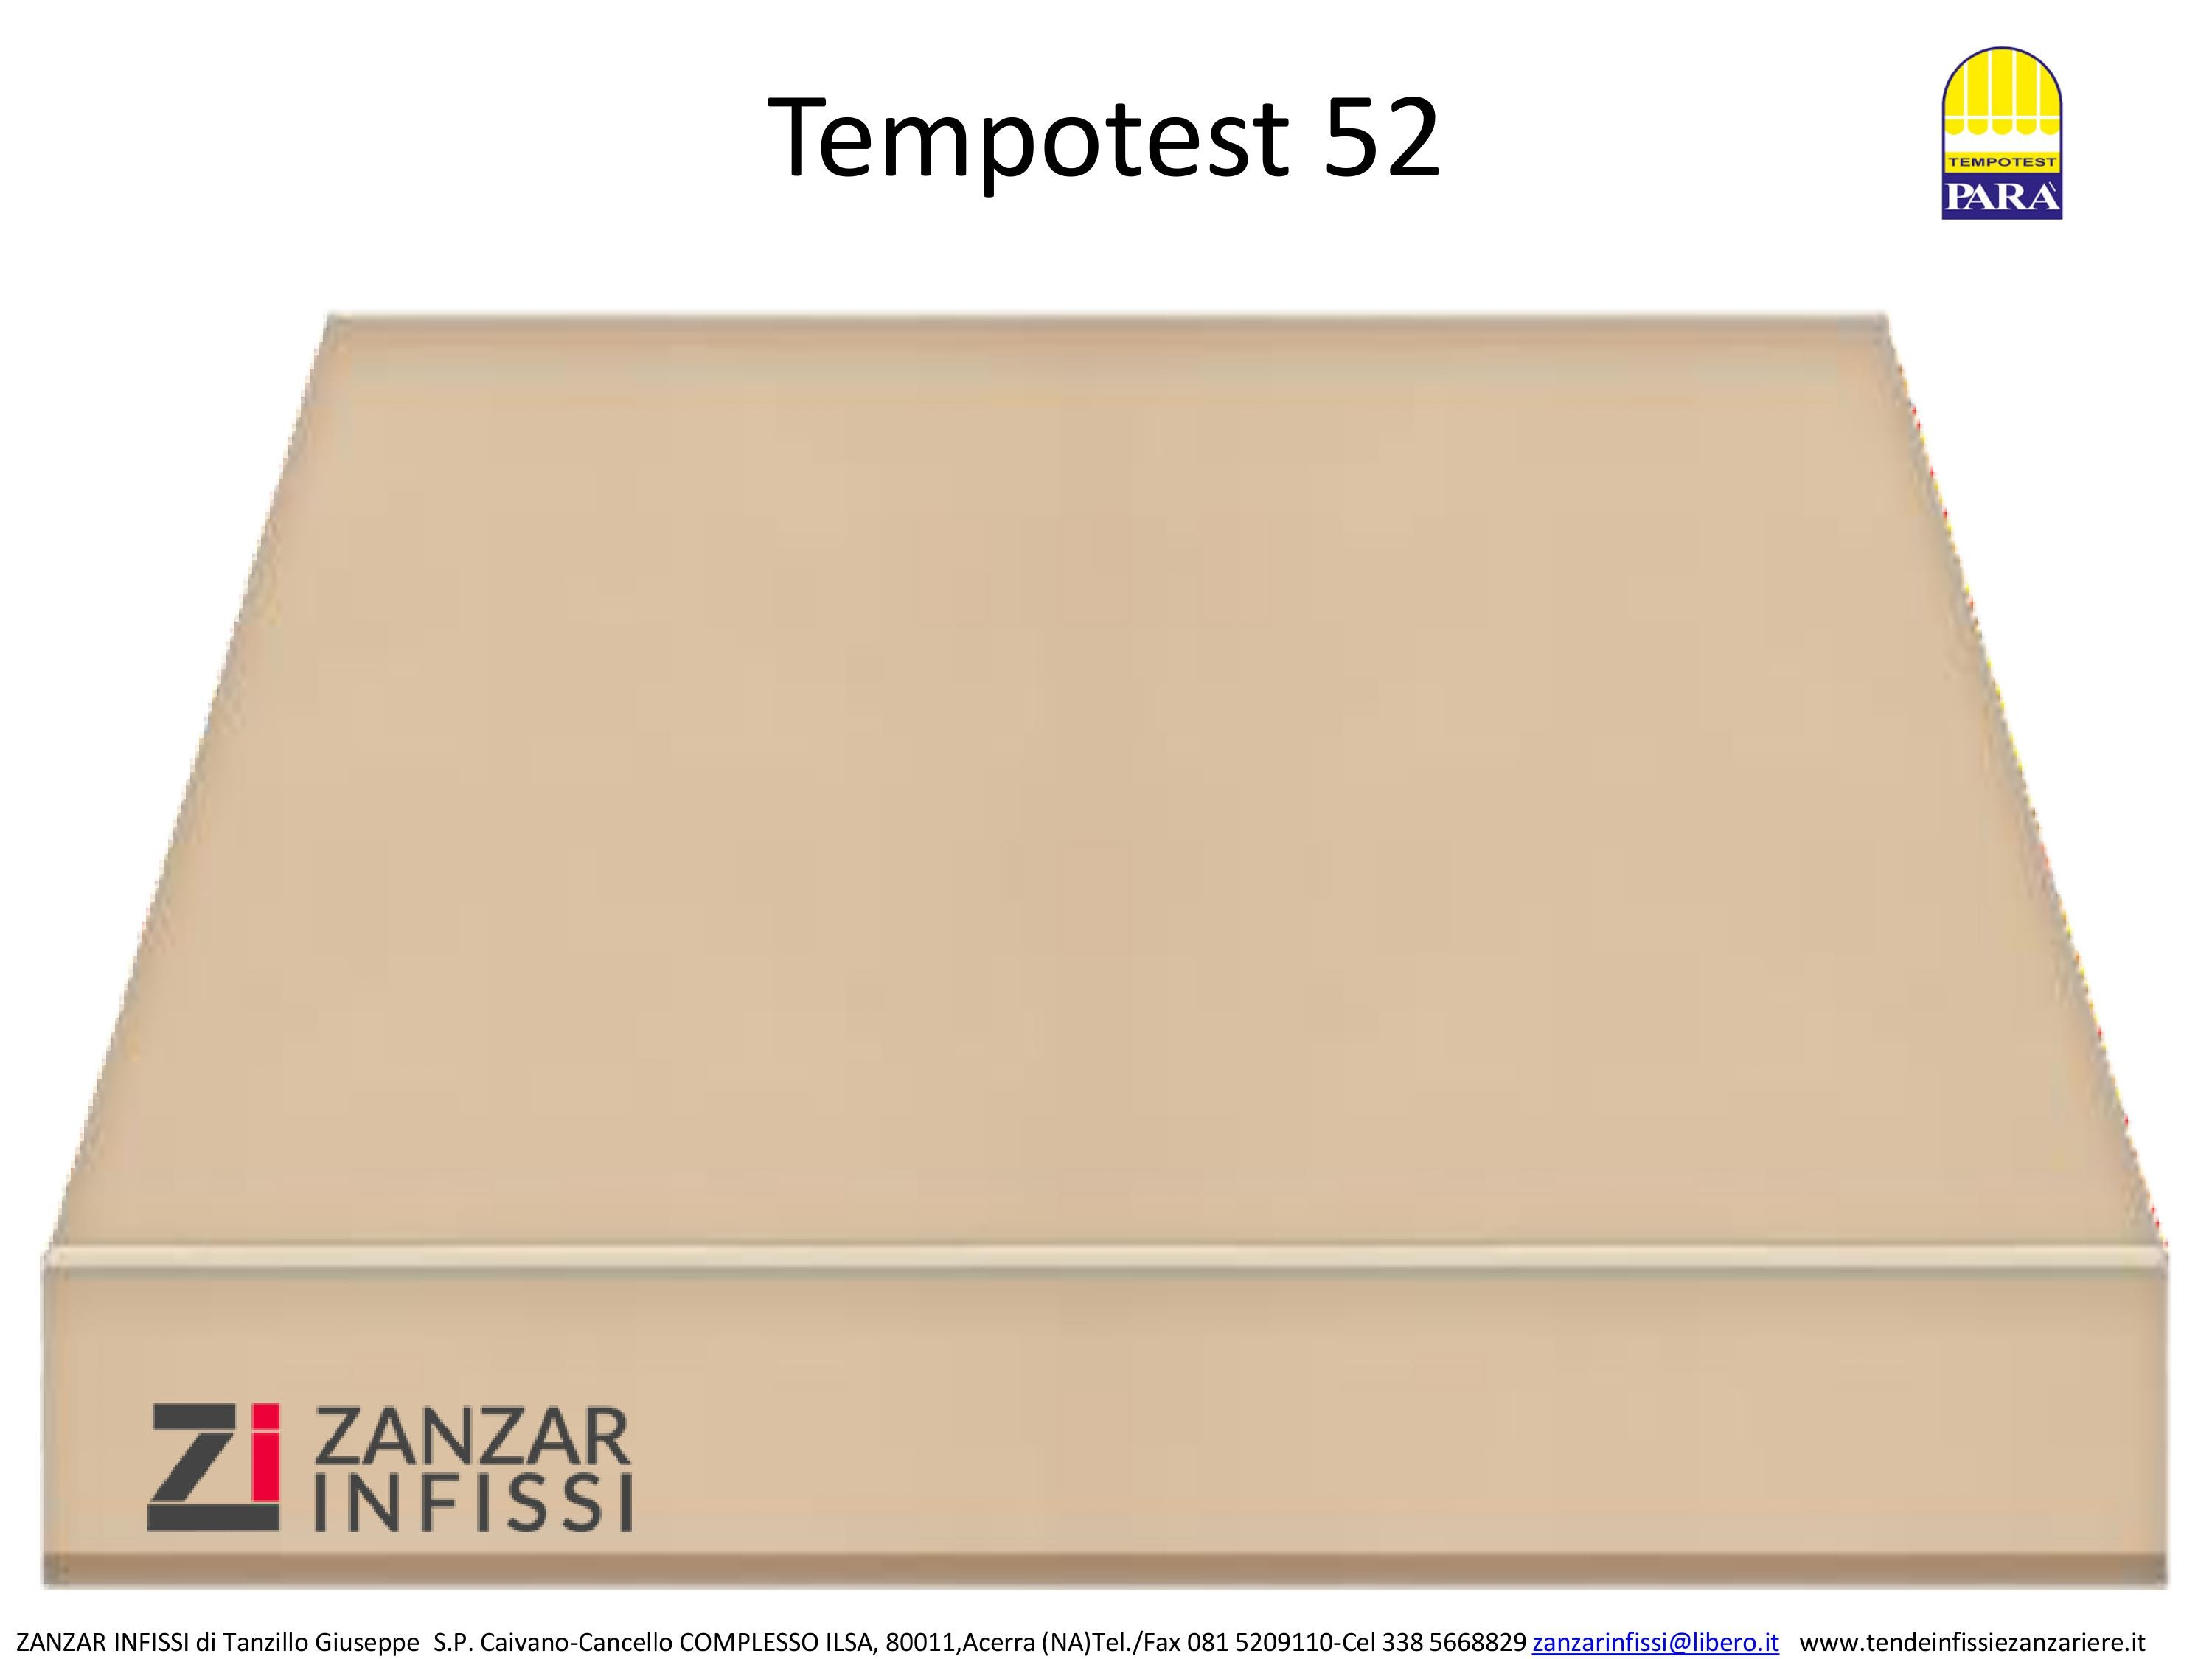 Tempotest 52